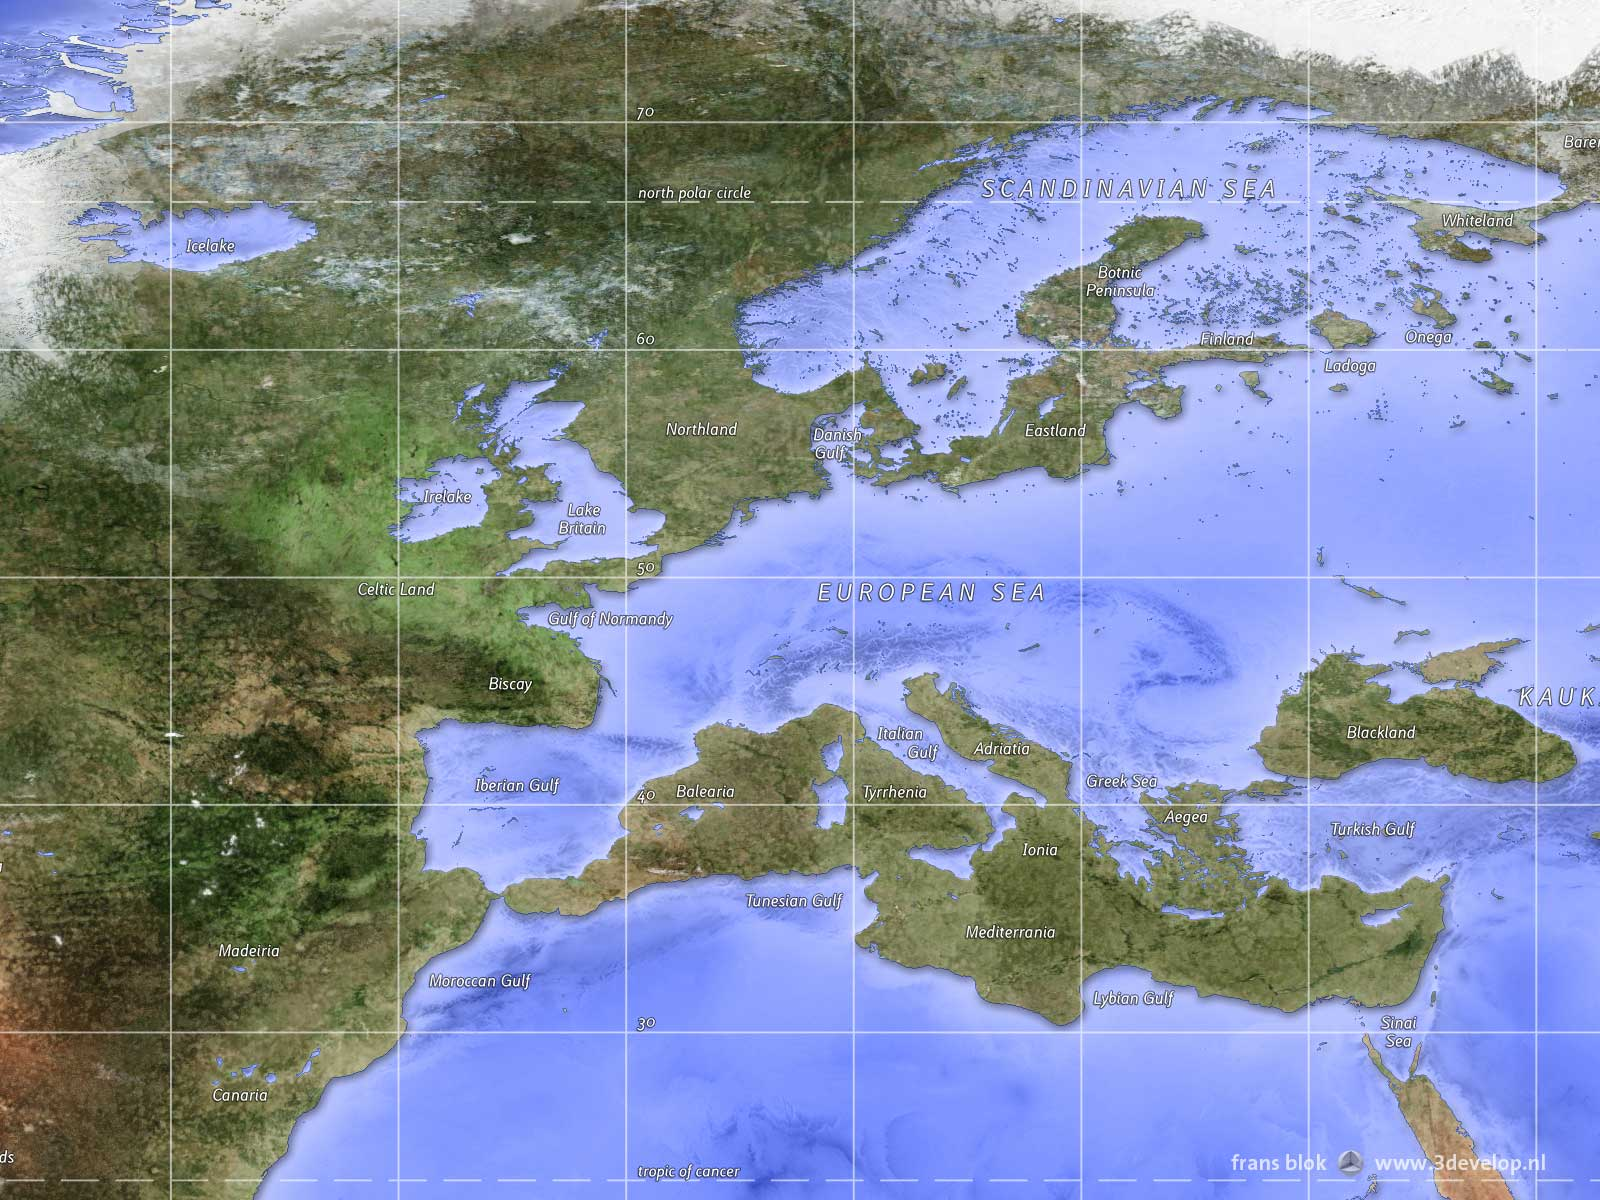 World Map Water.The Inverted World Map Variations On A Blue Marble 3develop